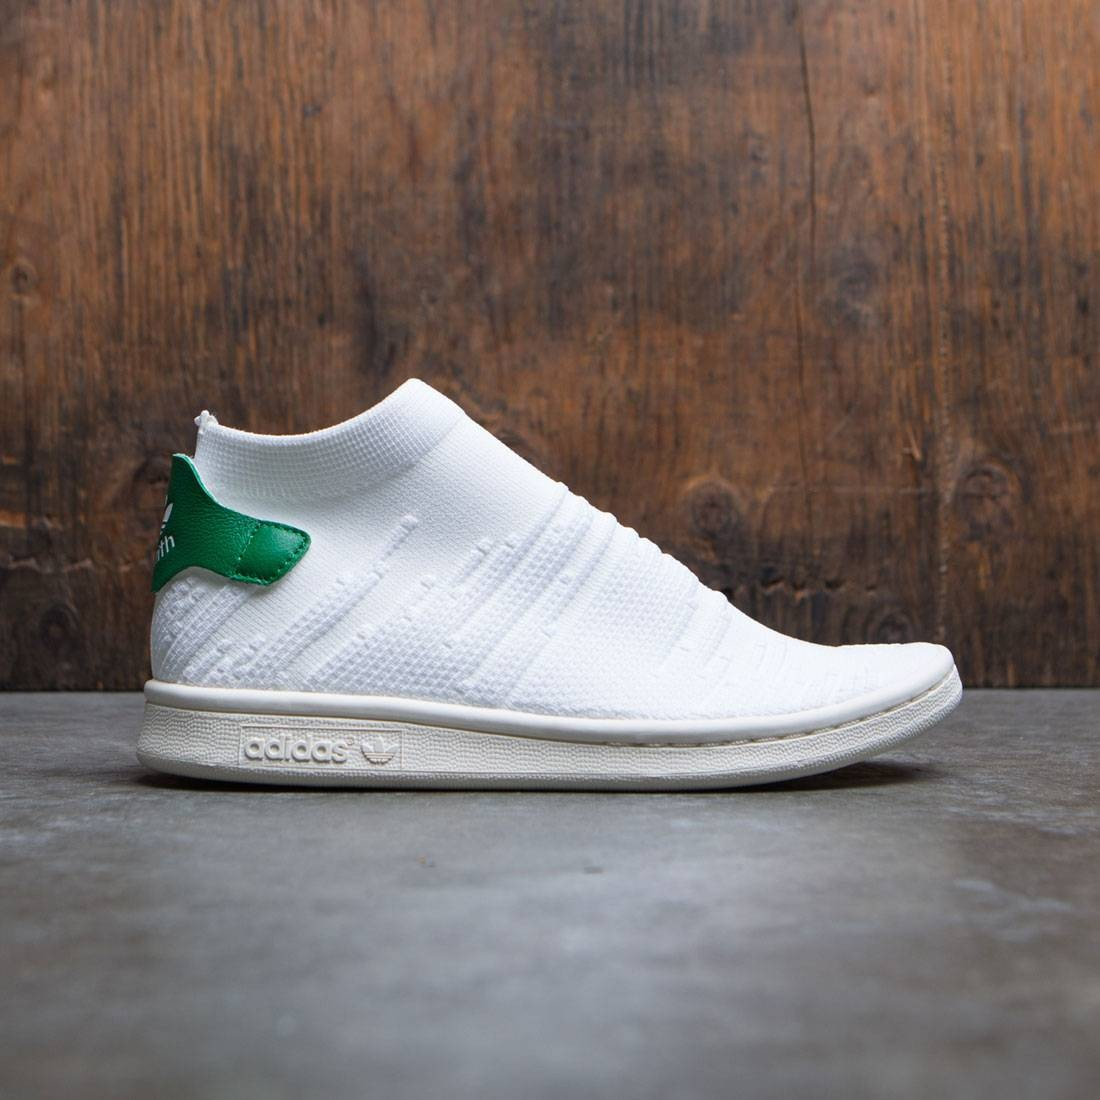 new arrival 8e6e1 1ebe2 Adidas Women Stan Smith Sock Primeknit W white footwear white green